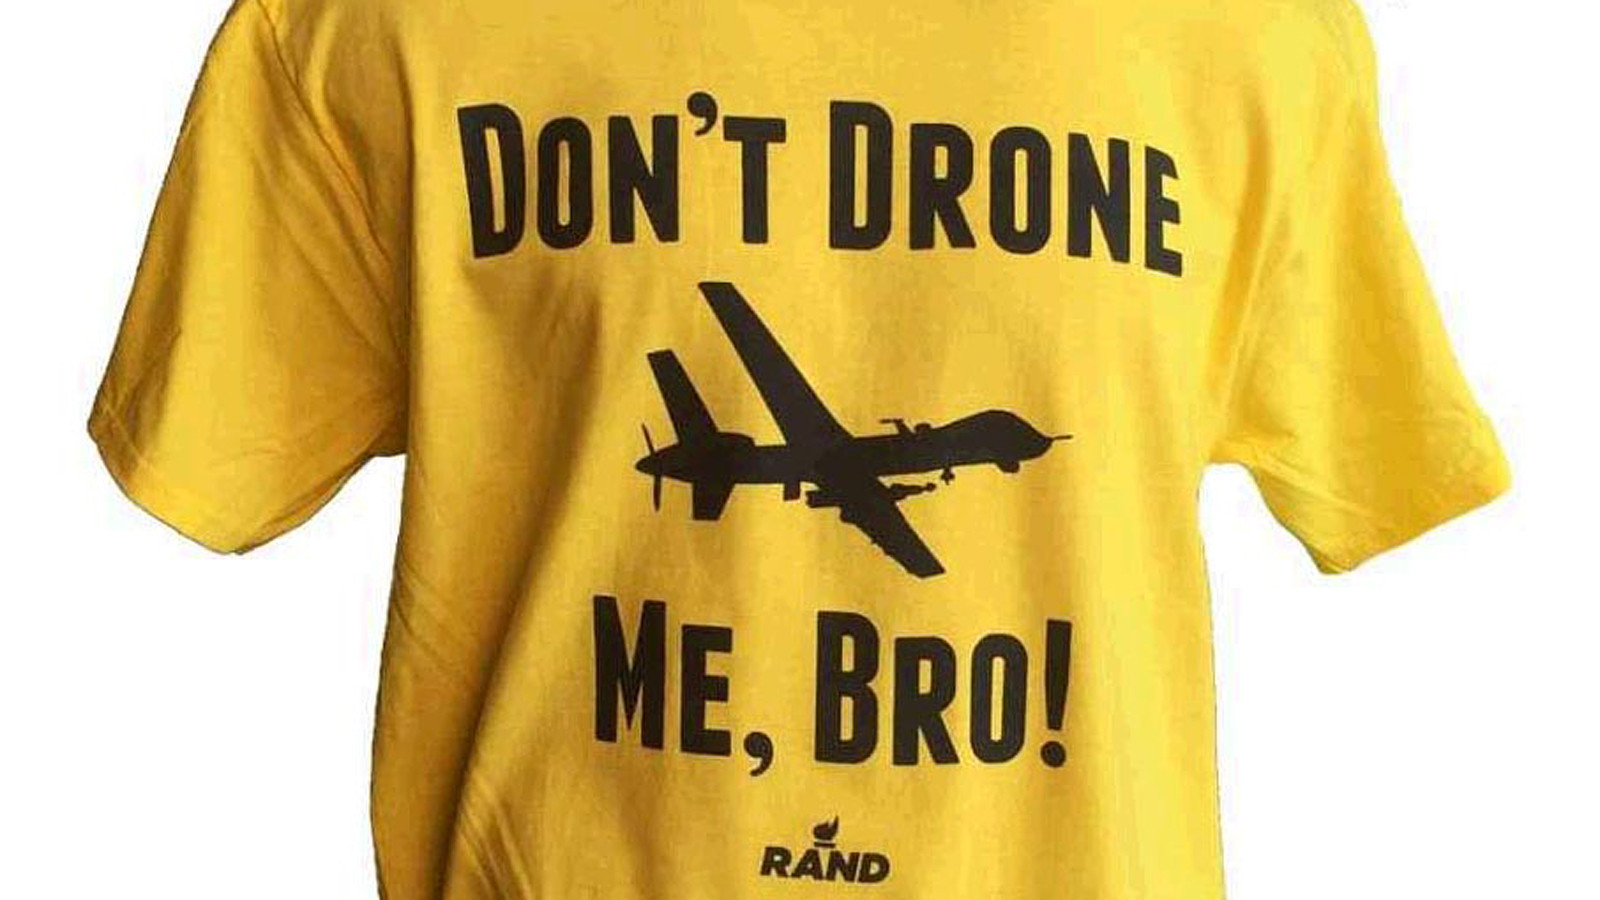 don t drone me bro with La Na C Aign Swag Heats Up 20150514 Story on Rand Pictures in addition Silencer Co Dont Drone Me Bro Tee likewise Watch furthermore La Na C aign Swag Heats Up 20150514 Story additionally Drone craft supplies.